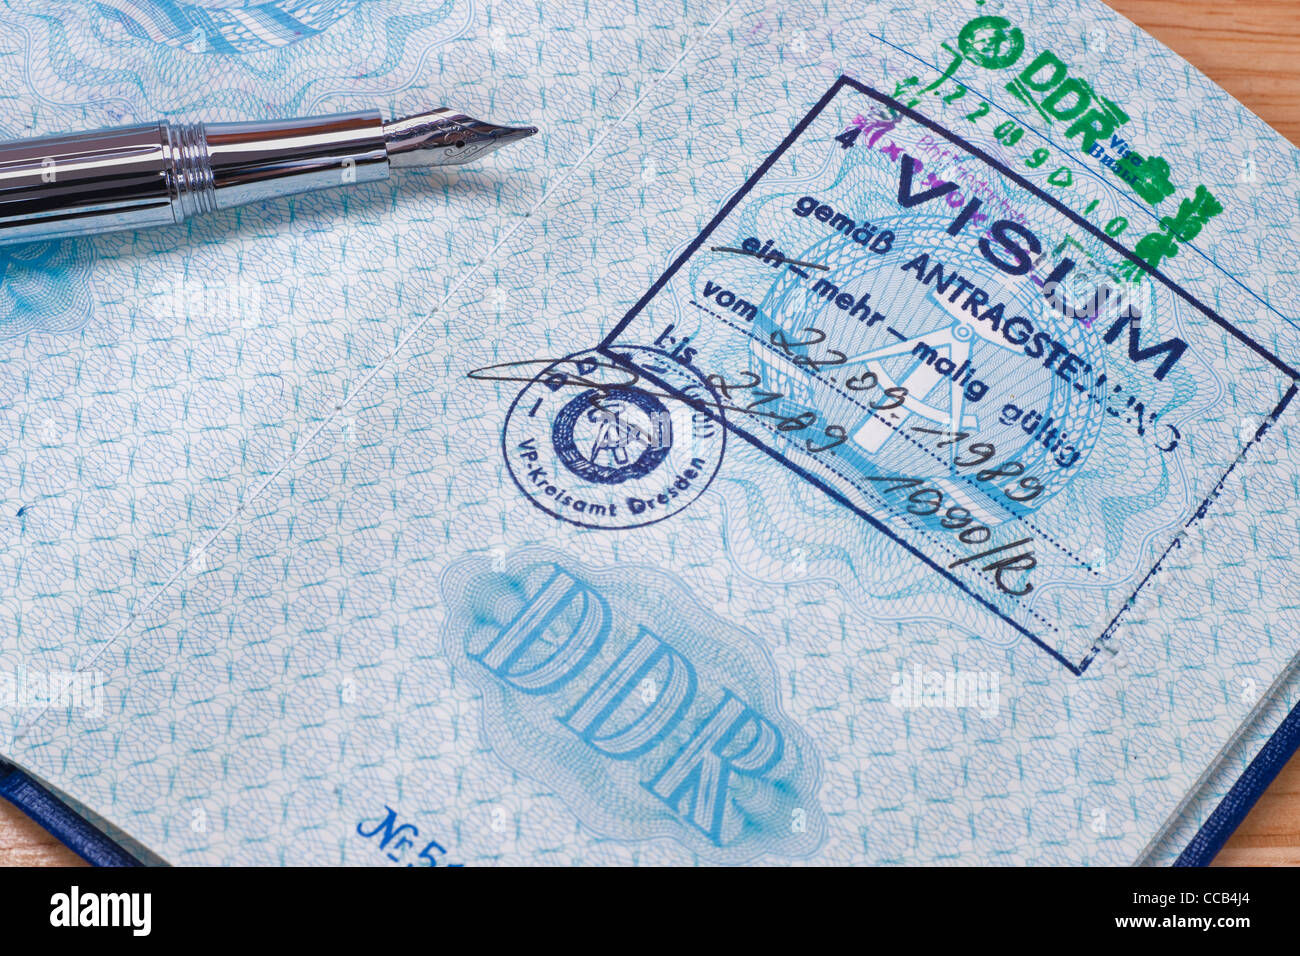 opened passport from GDR with a Visa and a stamp to border crossing at Friedrichstraße Berlin, a pen is alongside - Stock Image